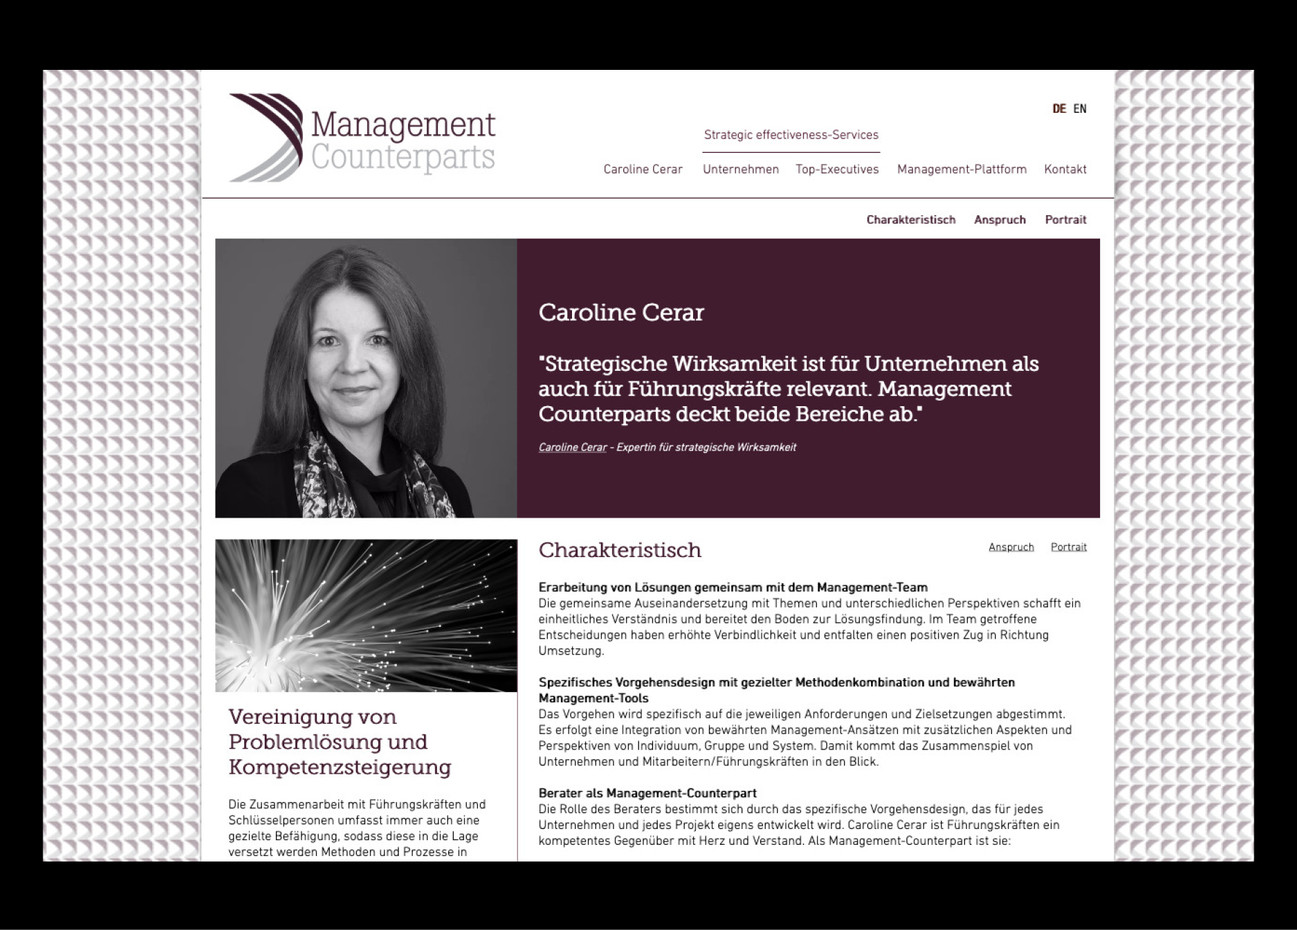 MANAGEMENT COUNTERPARTS - CAROLINE CERAR